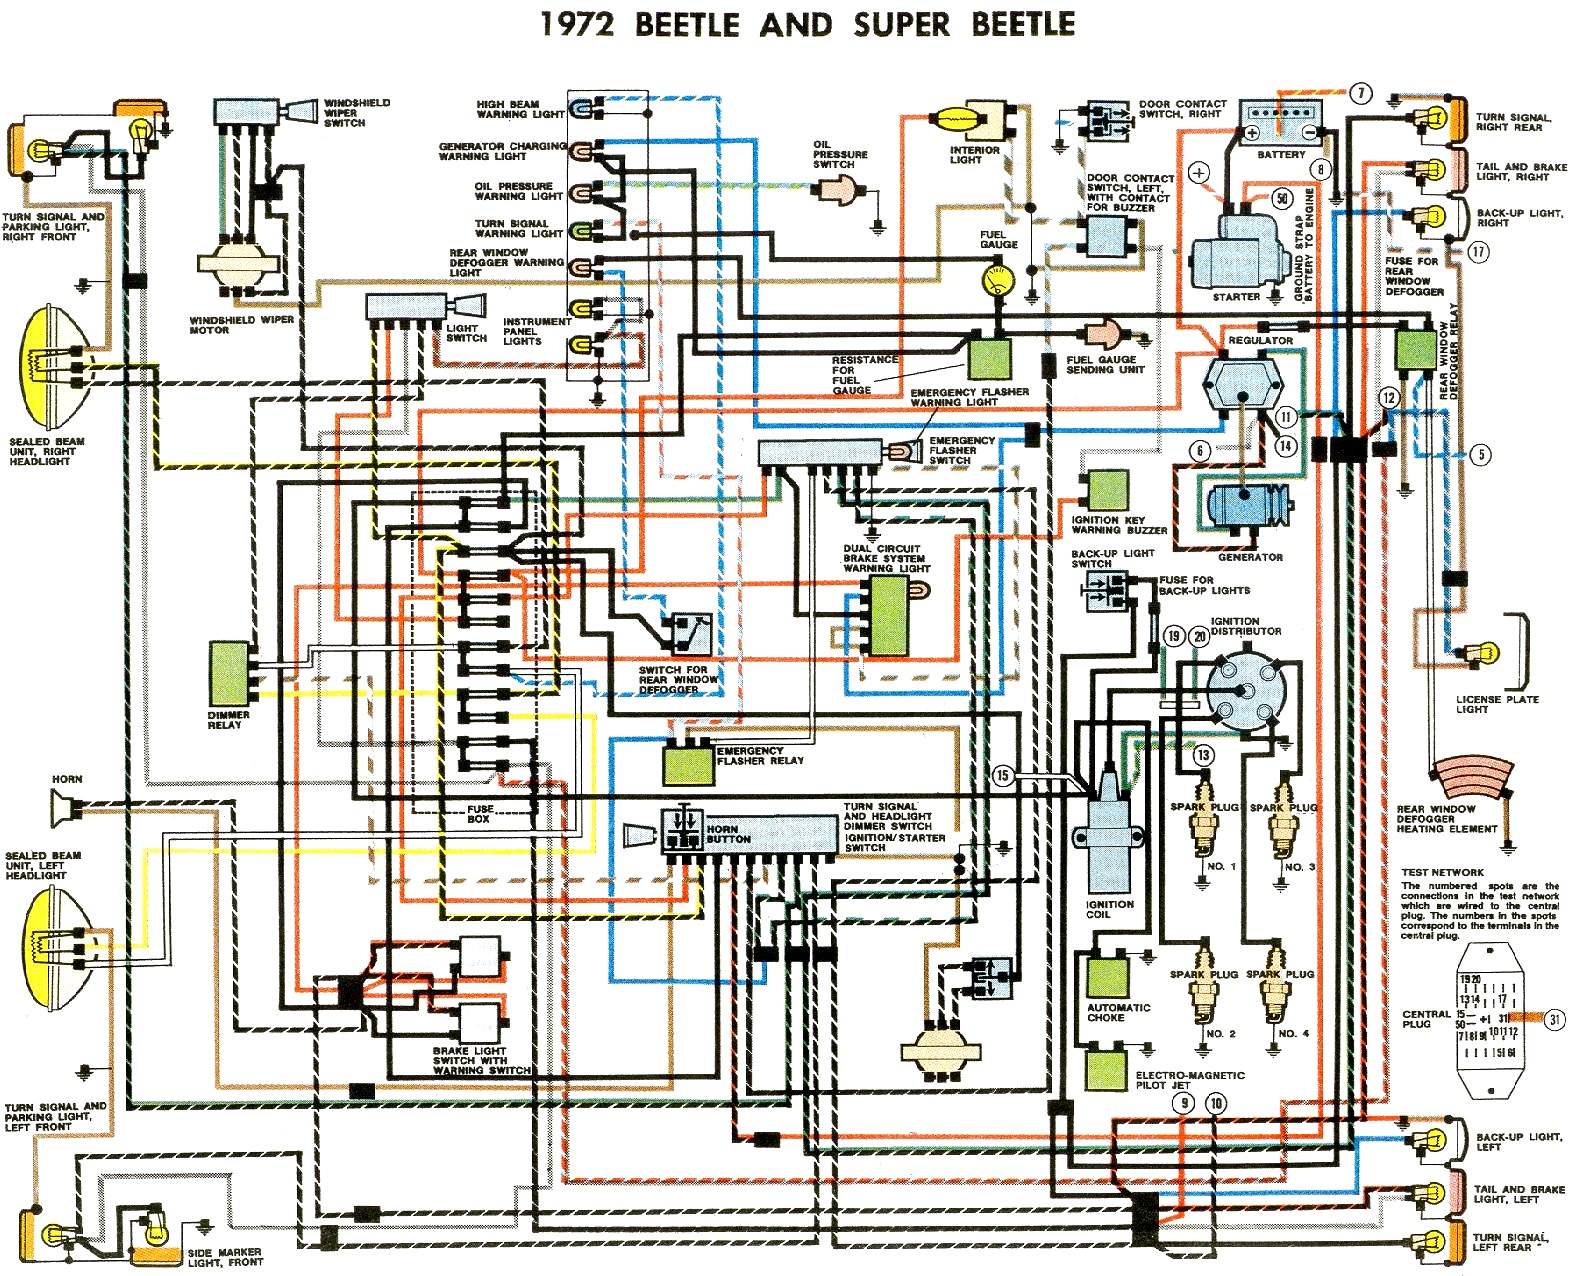 bug_72 1972 beetle wiring diagram thegoldenbug com 1971 vw beetle wiring diagram at panicattacktreatment.co